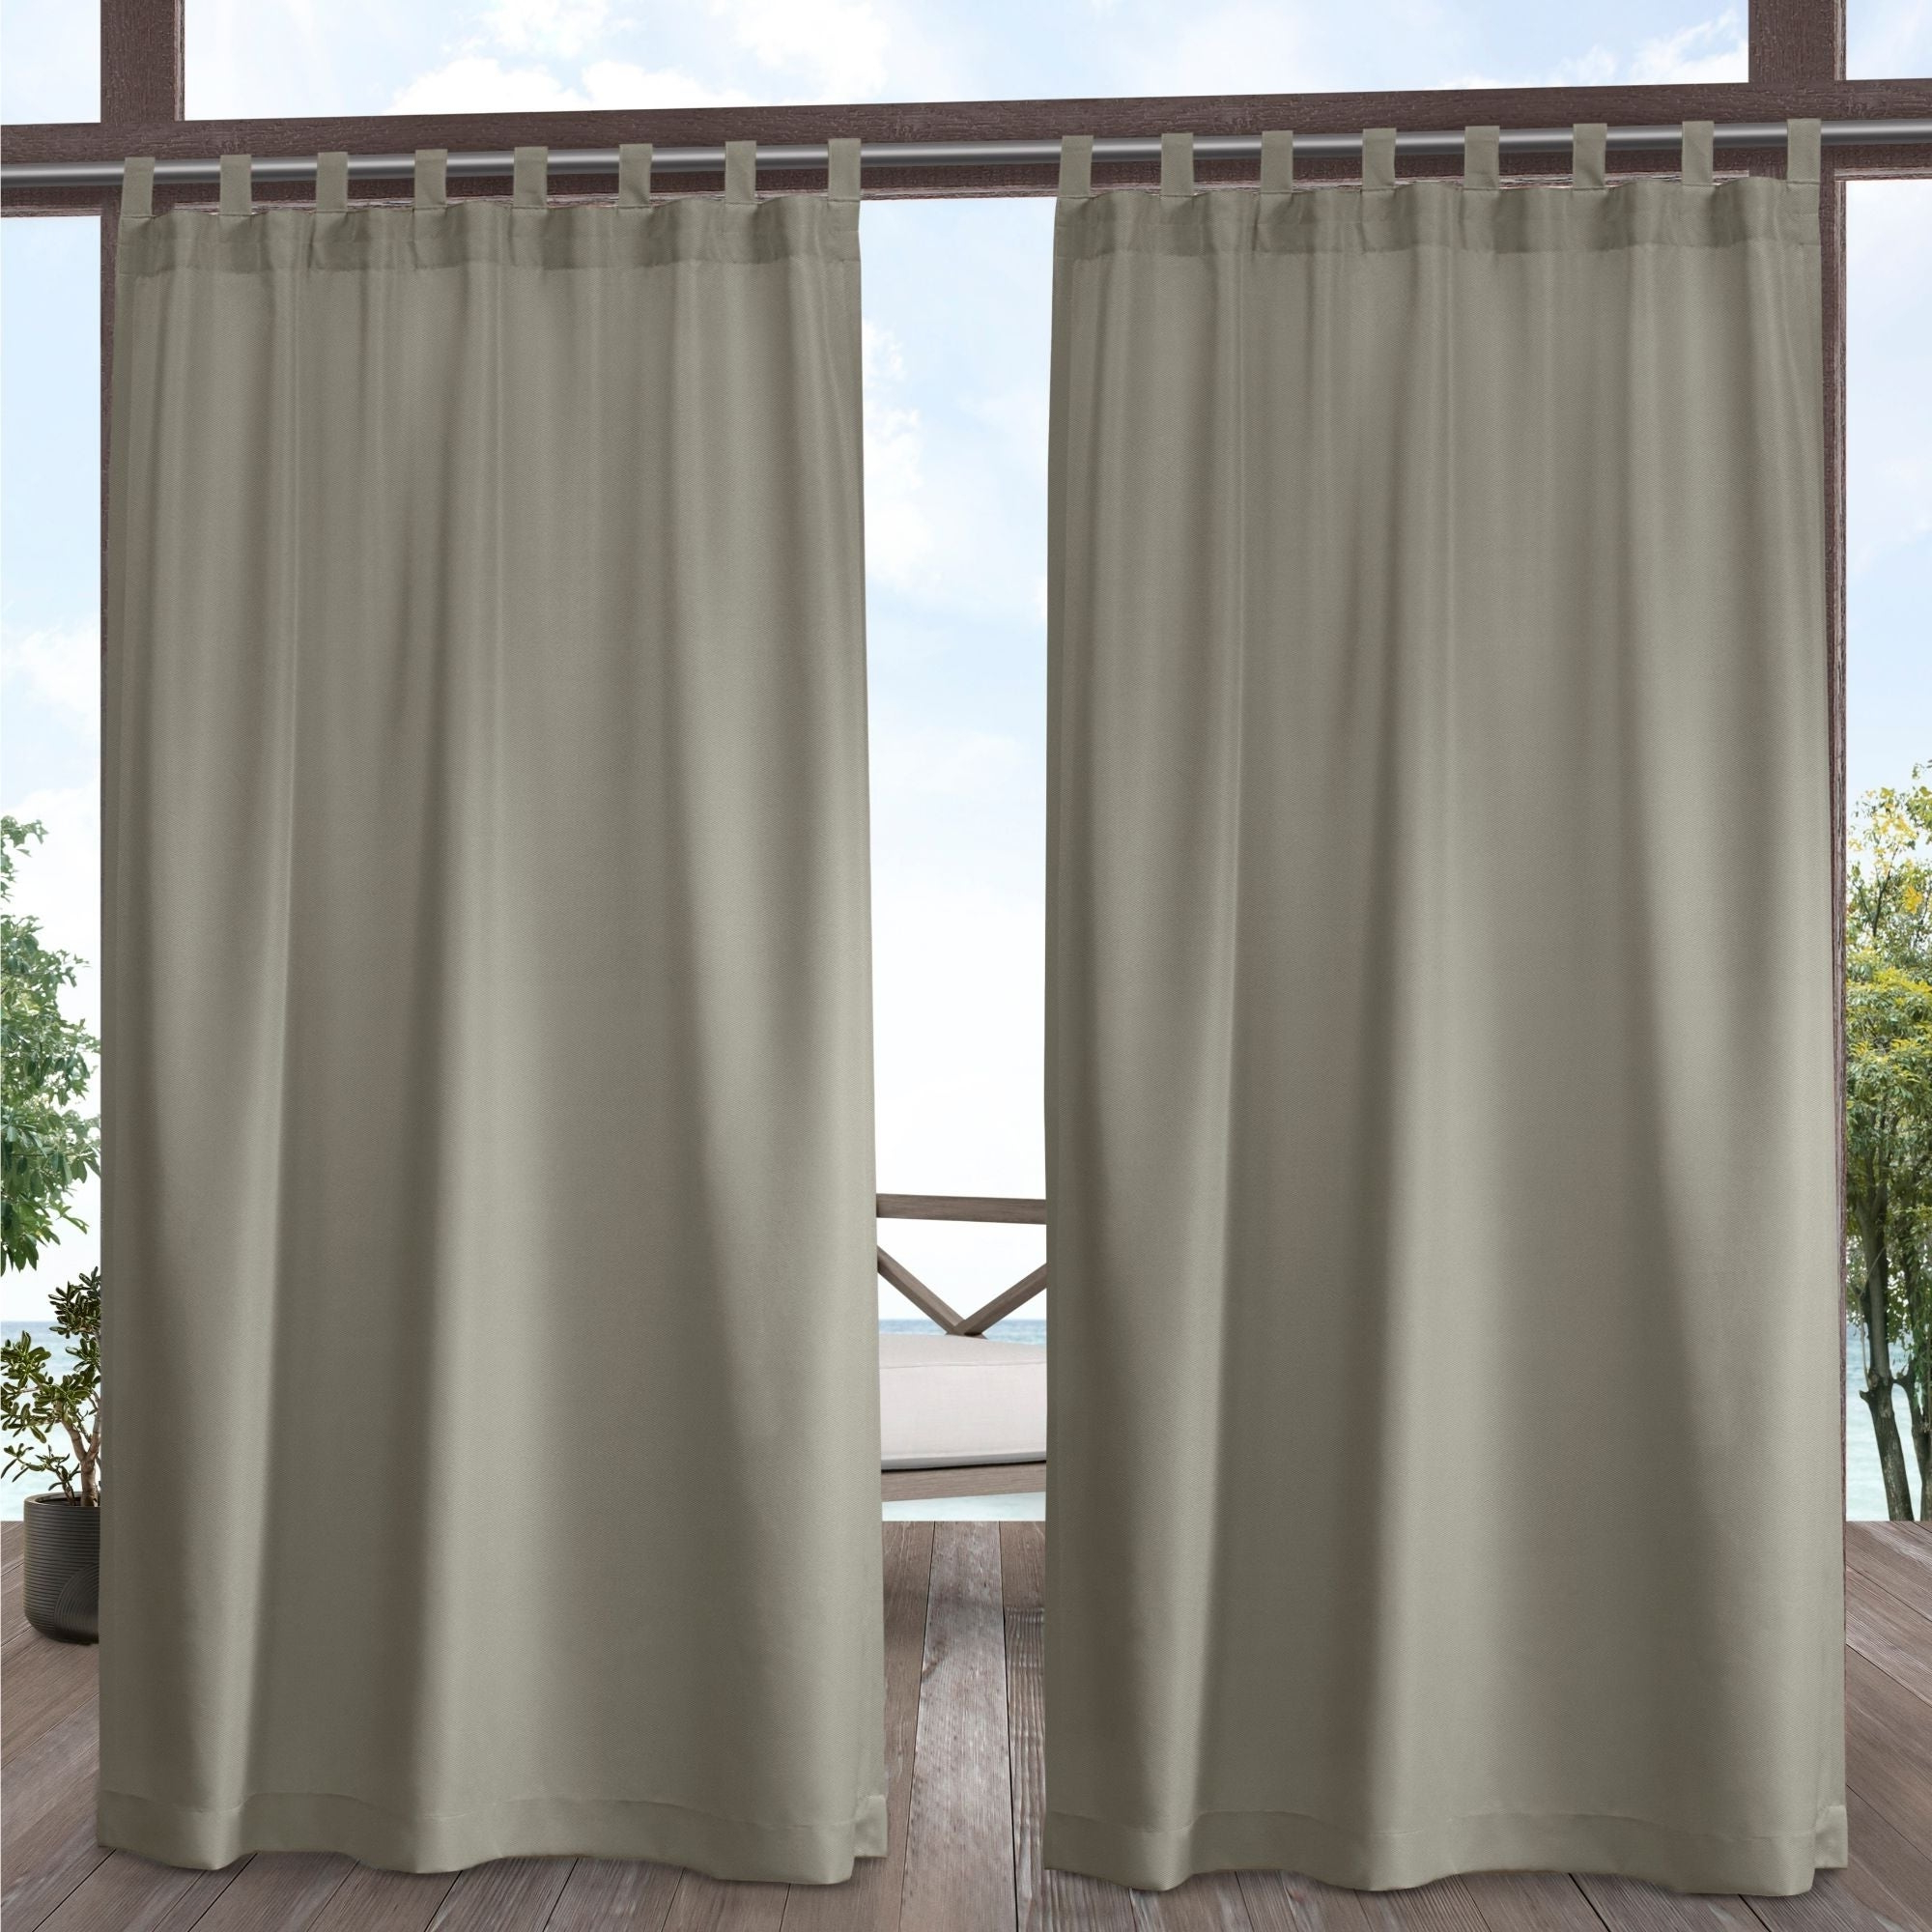 Most Current Indoor/outdoor Solid Cabana Grommet Top Curtain Panel Pairs For Ati Home Indoor/outdoor Solid Cabana Tab Top Window Curtain Panel Pair (View 6 of 20)